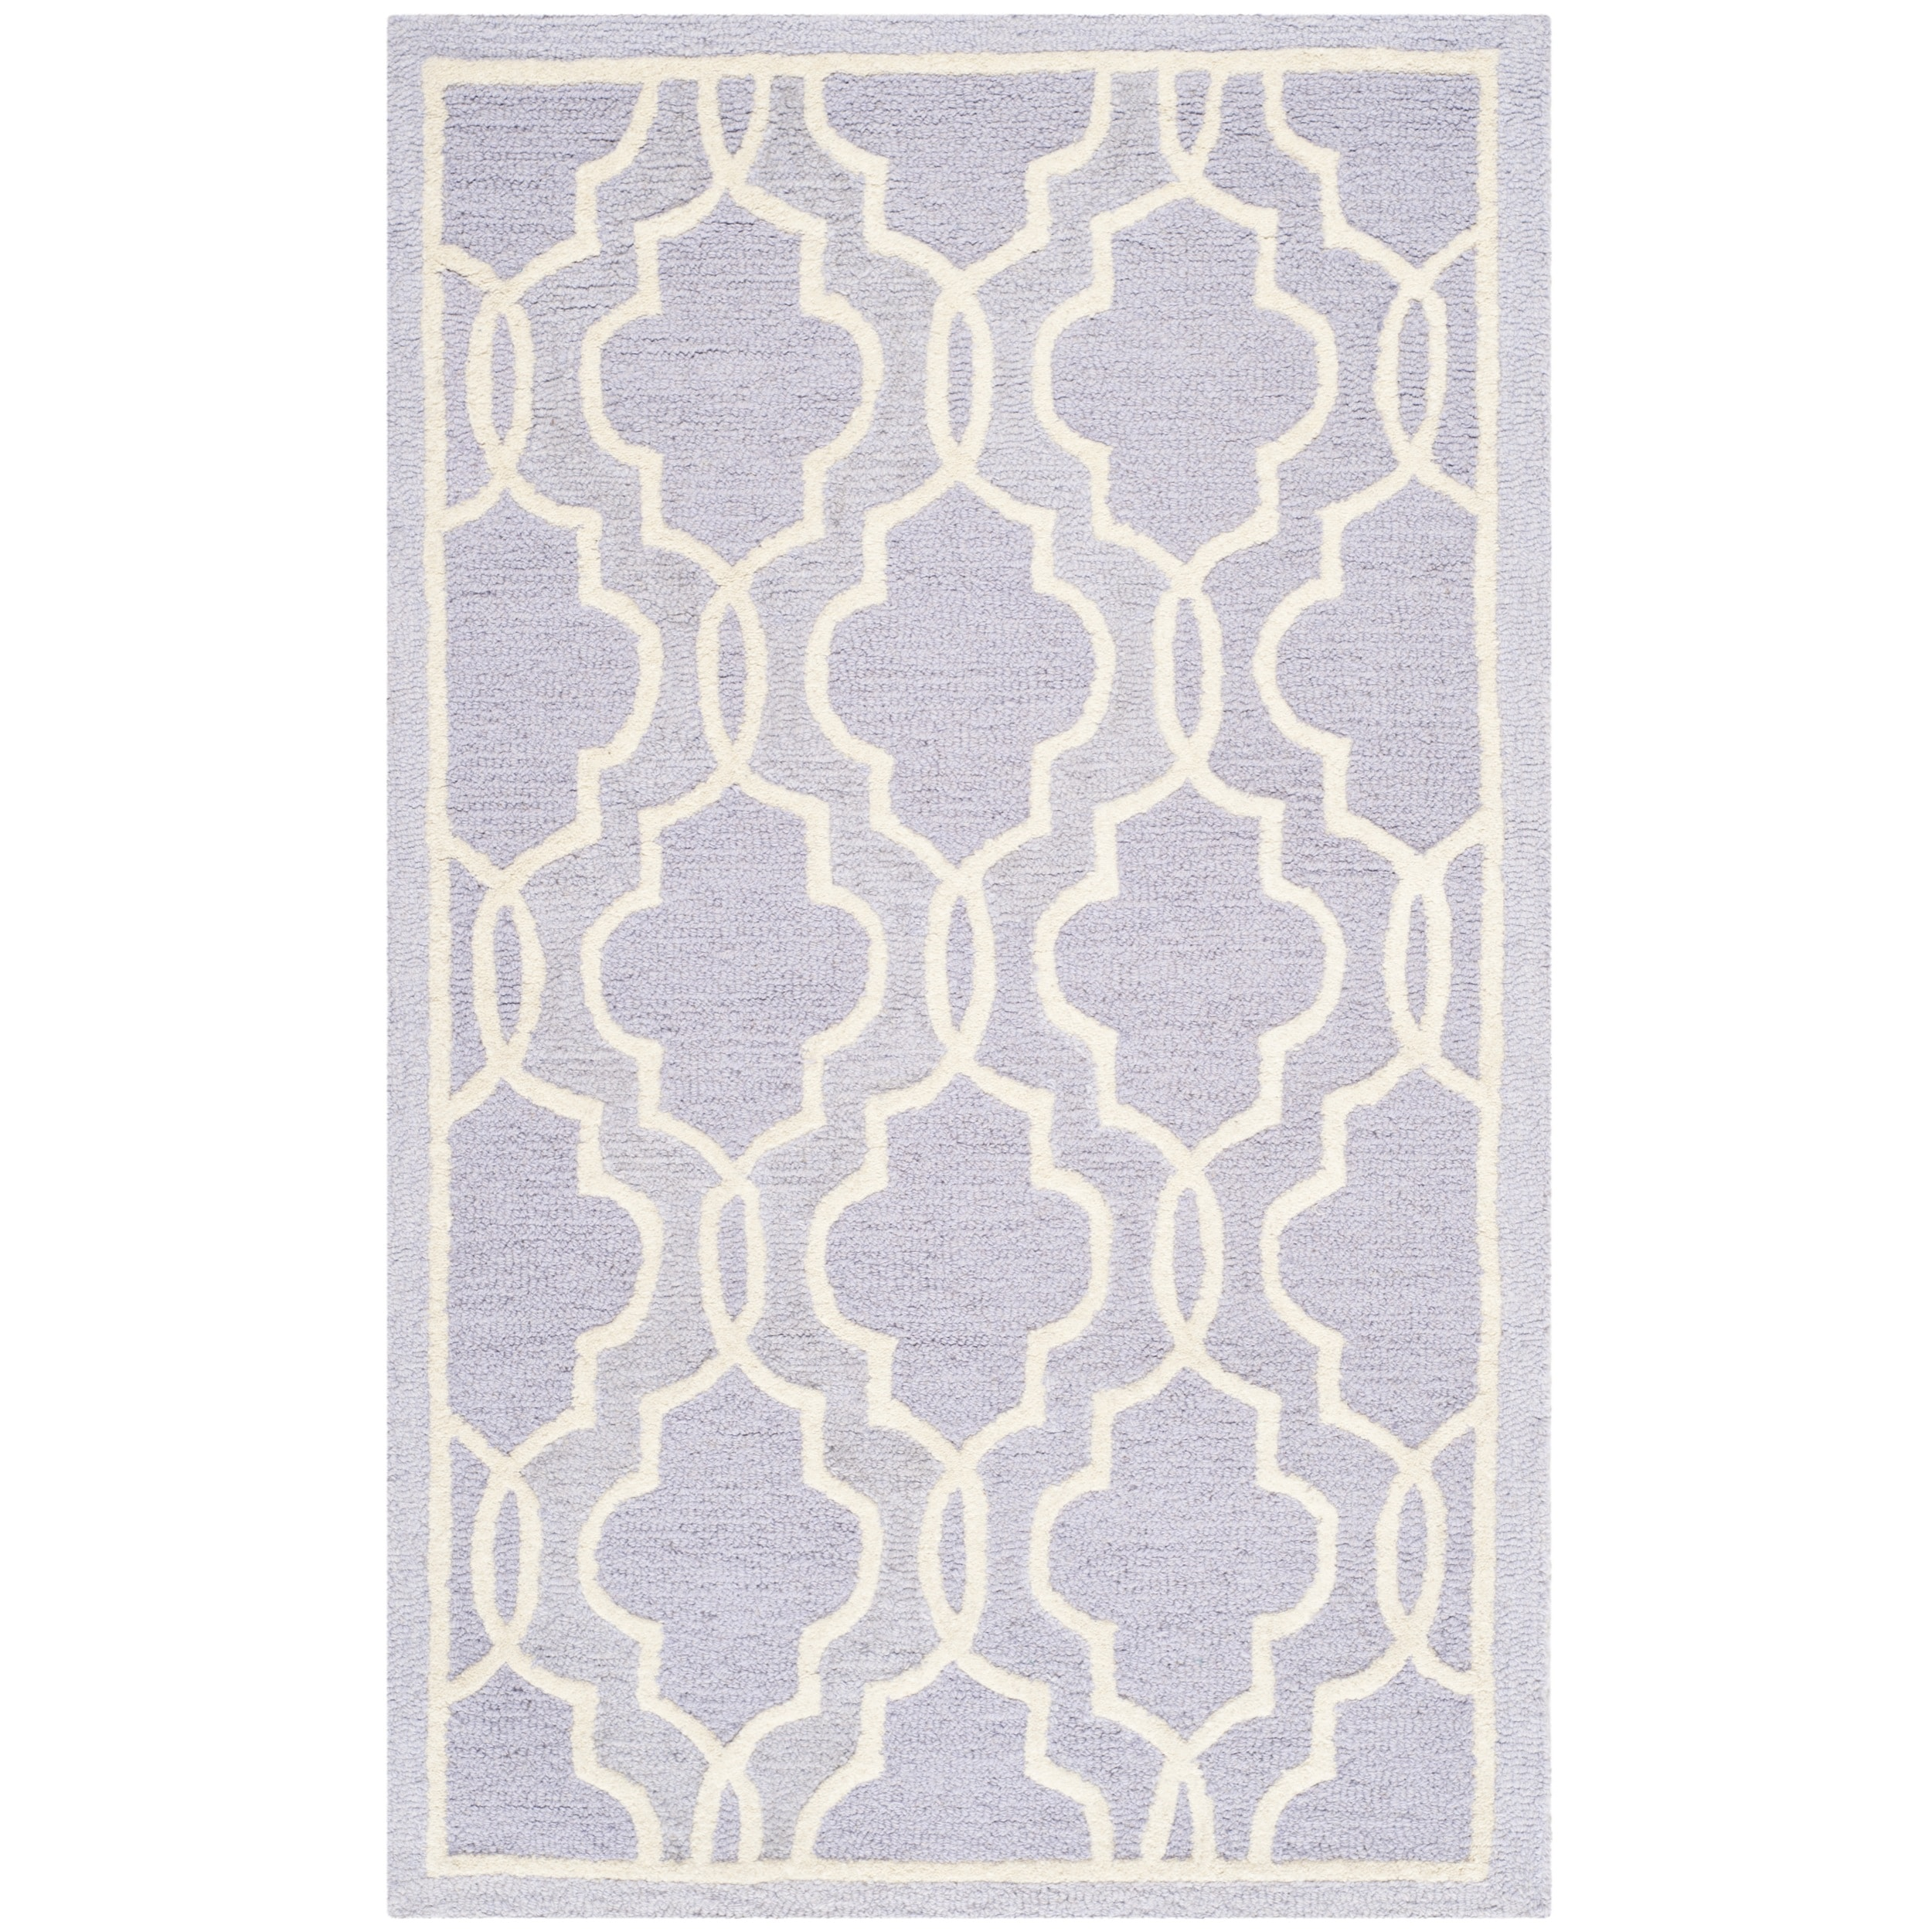 Moroccan Scroll Tile Light Blue Handmade Persian Style: Safavieh Handmade Cambridge Moroccan Lavander Indoor Wool